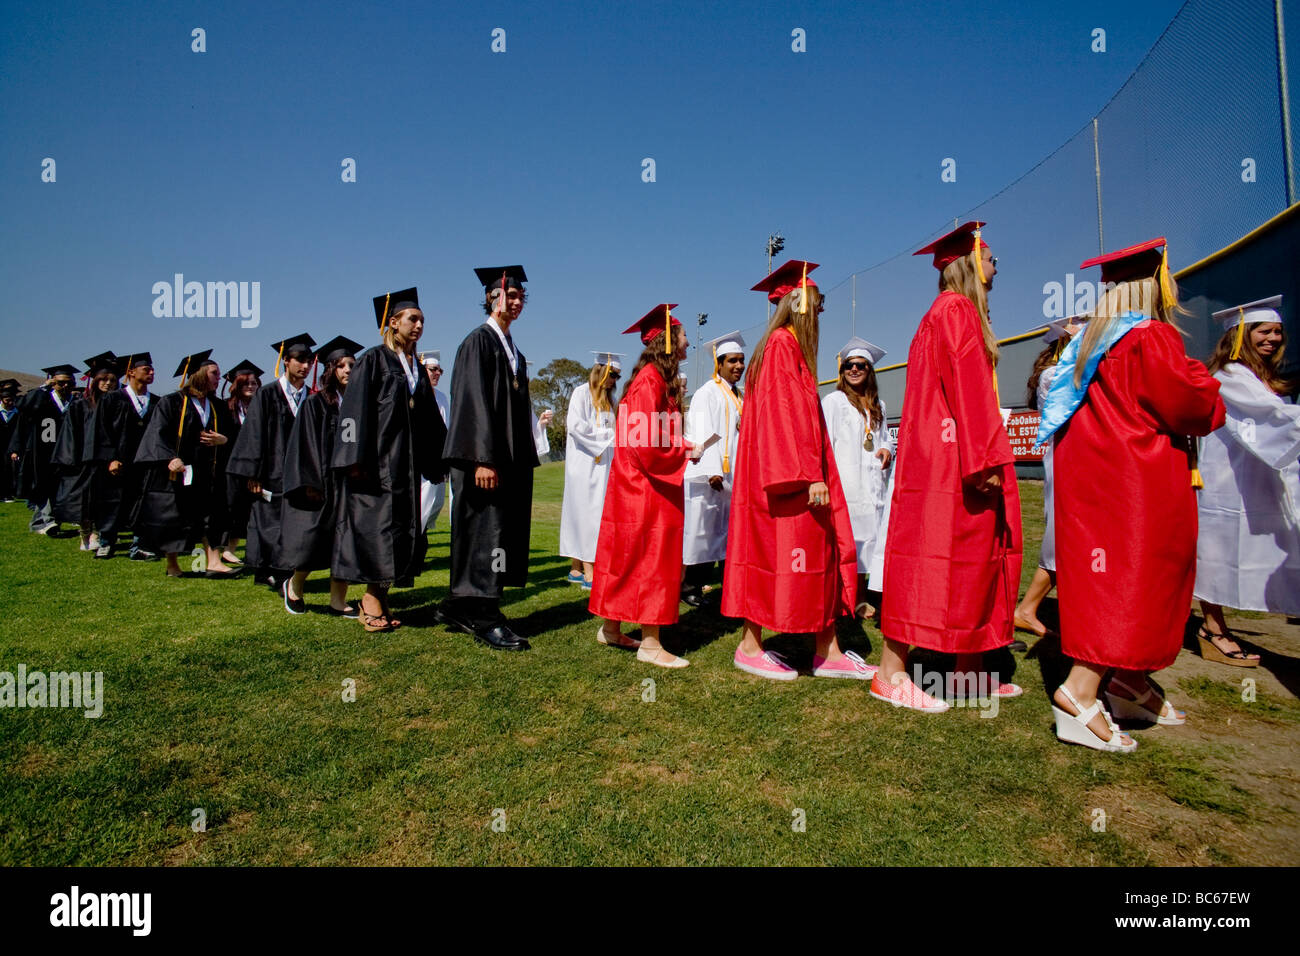 There were tears as well as cheers among high school graduates in Costa Mesa, CA. - Stock Image